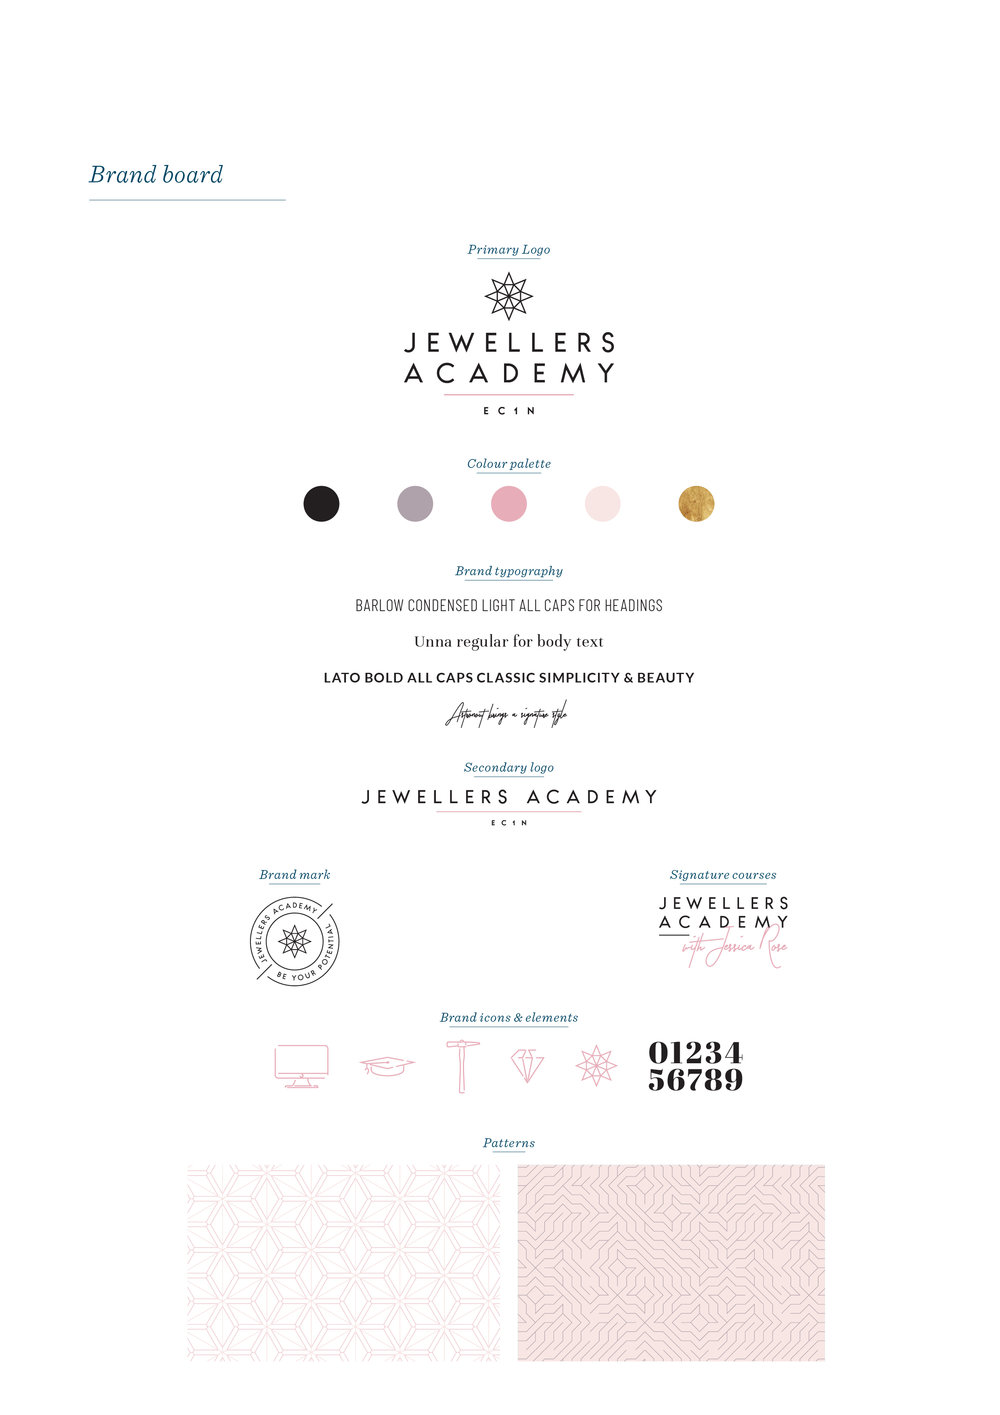 Jewellers Academy brand identity and logo design, brand design by Ditto Creative, boutique branding agency Kent